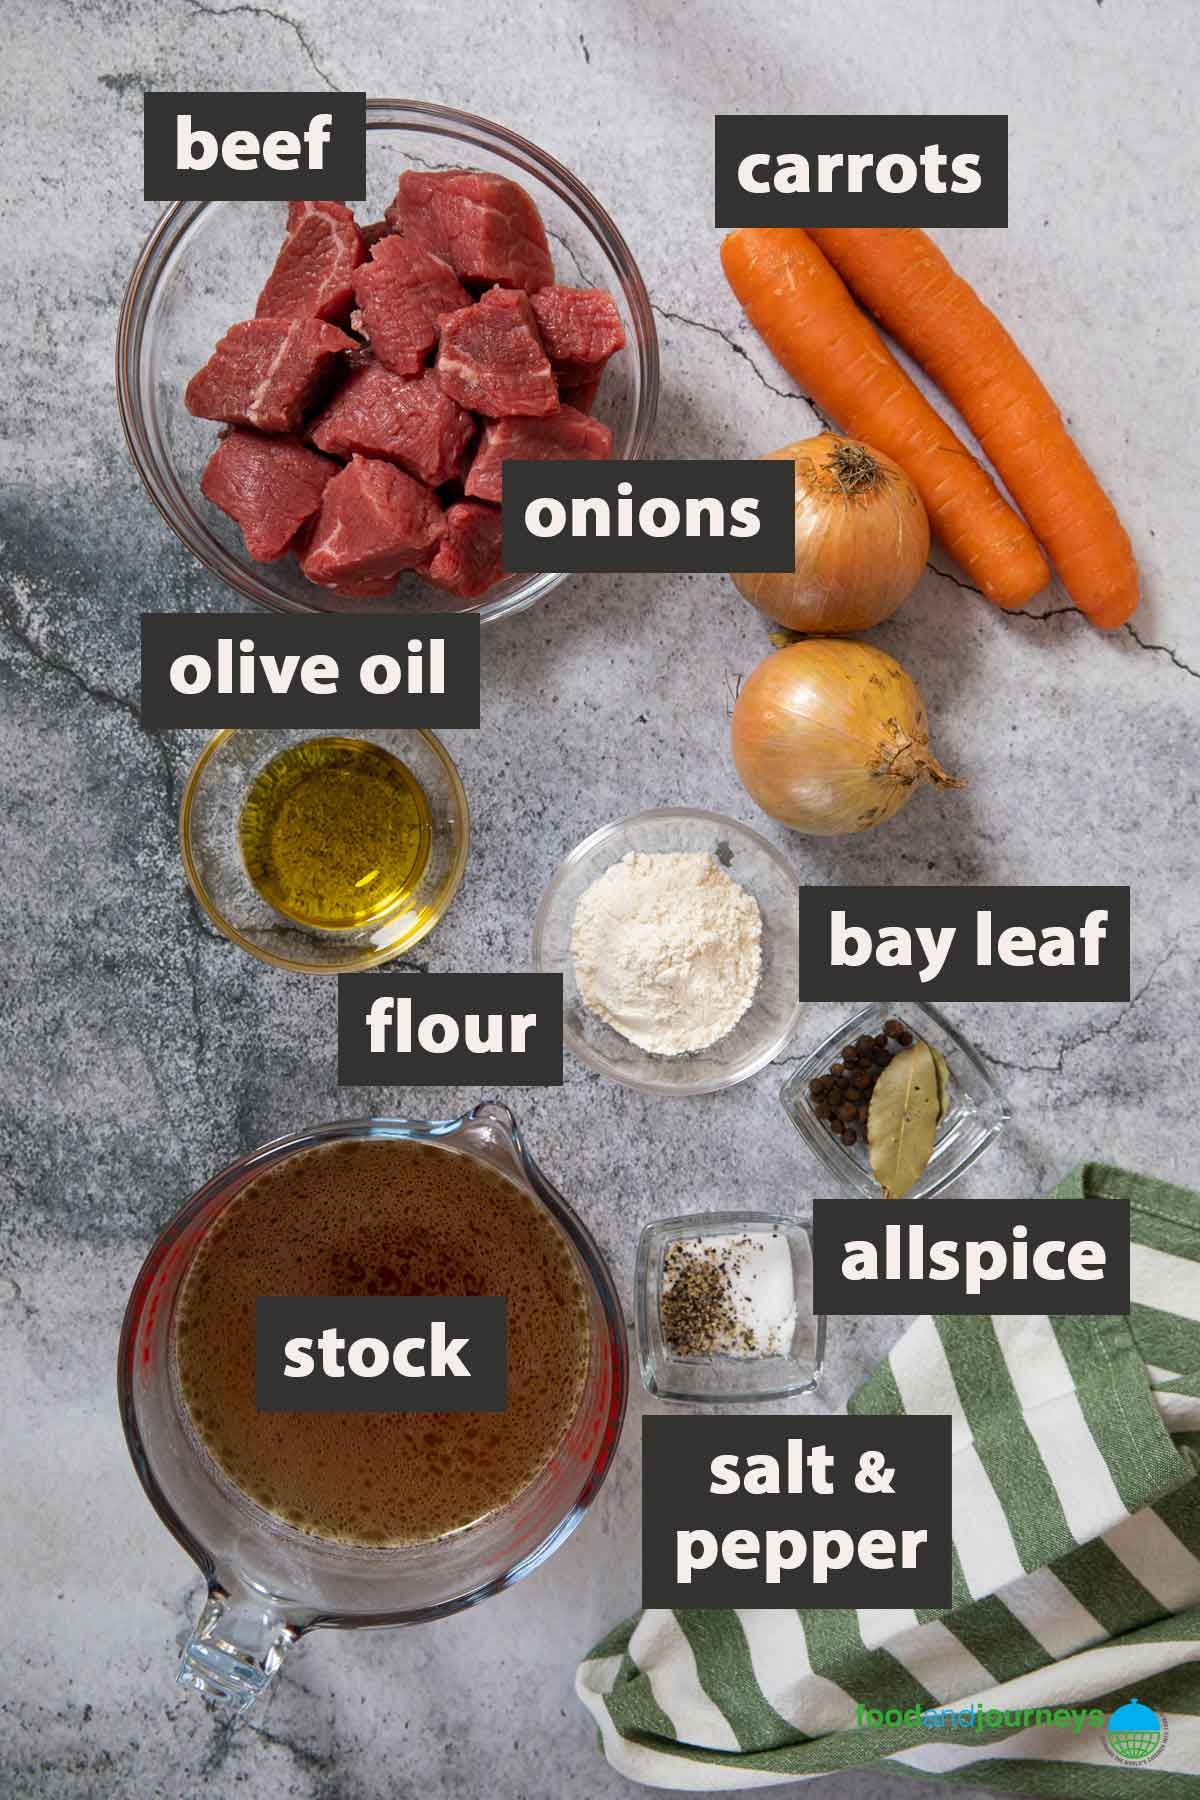 All the ingredients you need to prepare Swedish allspice beet stew at home.